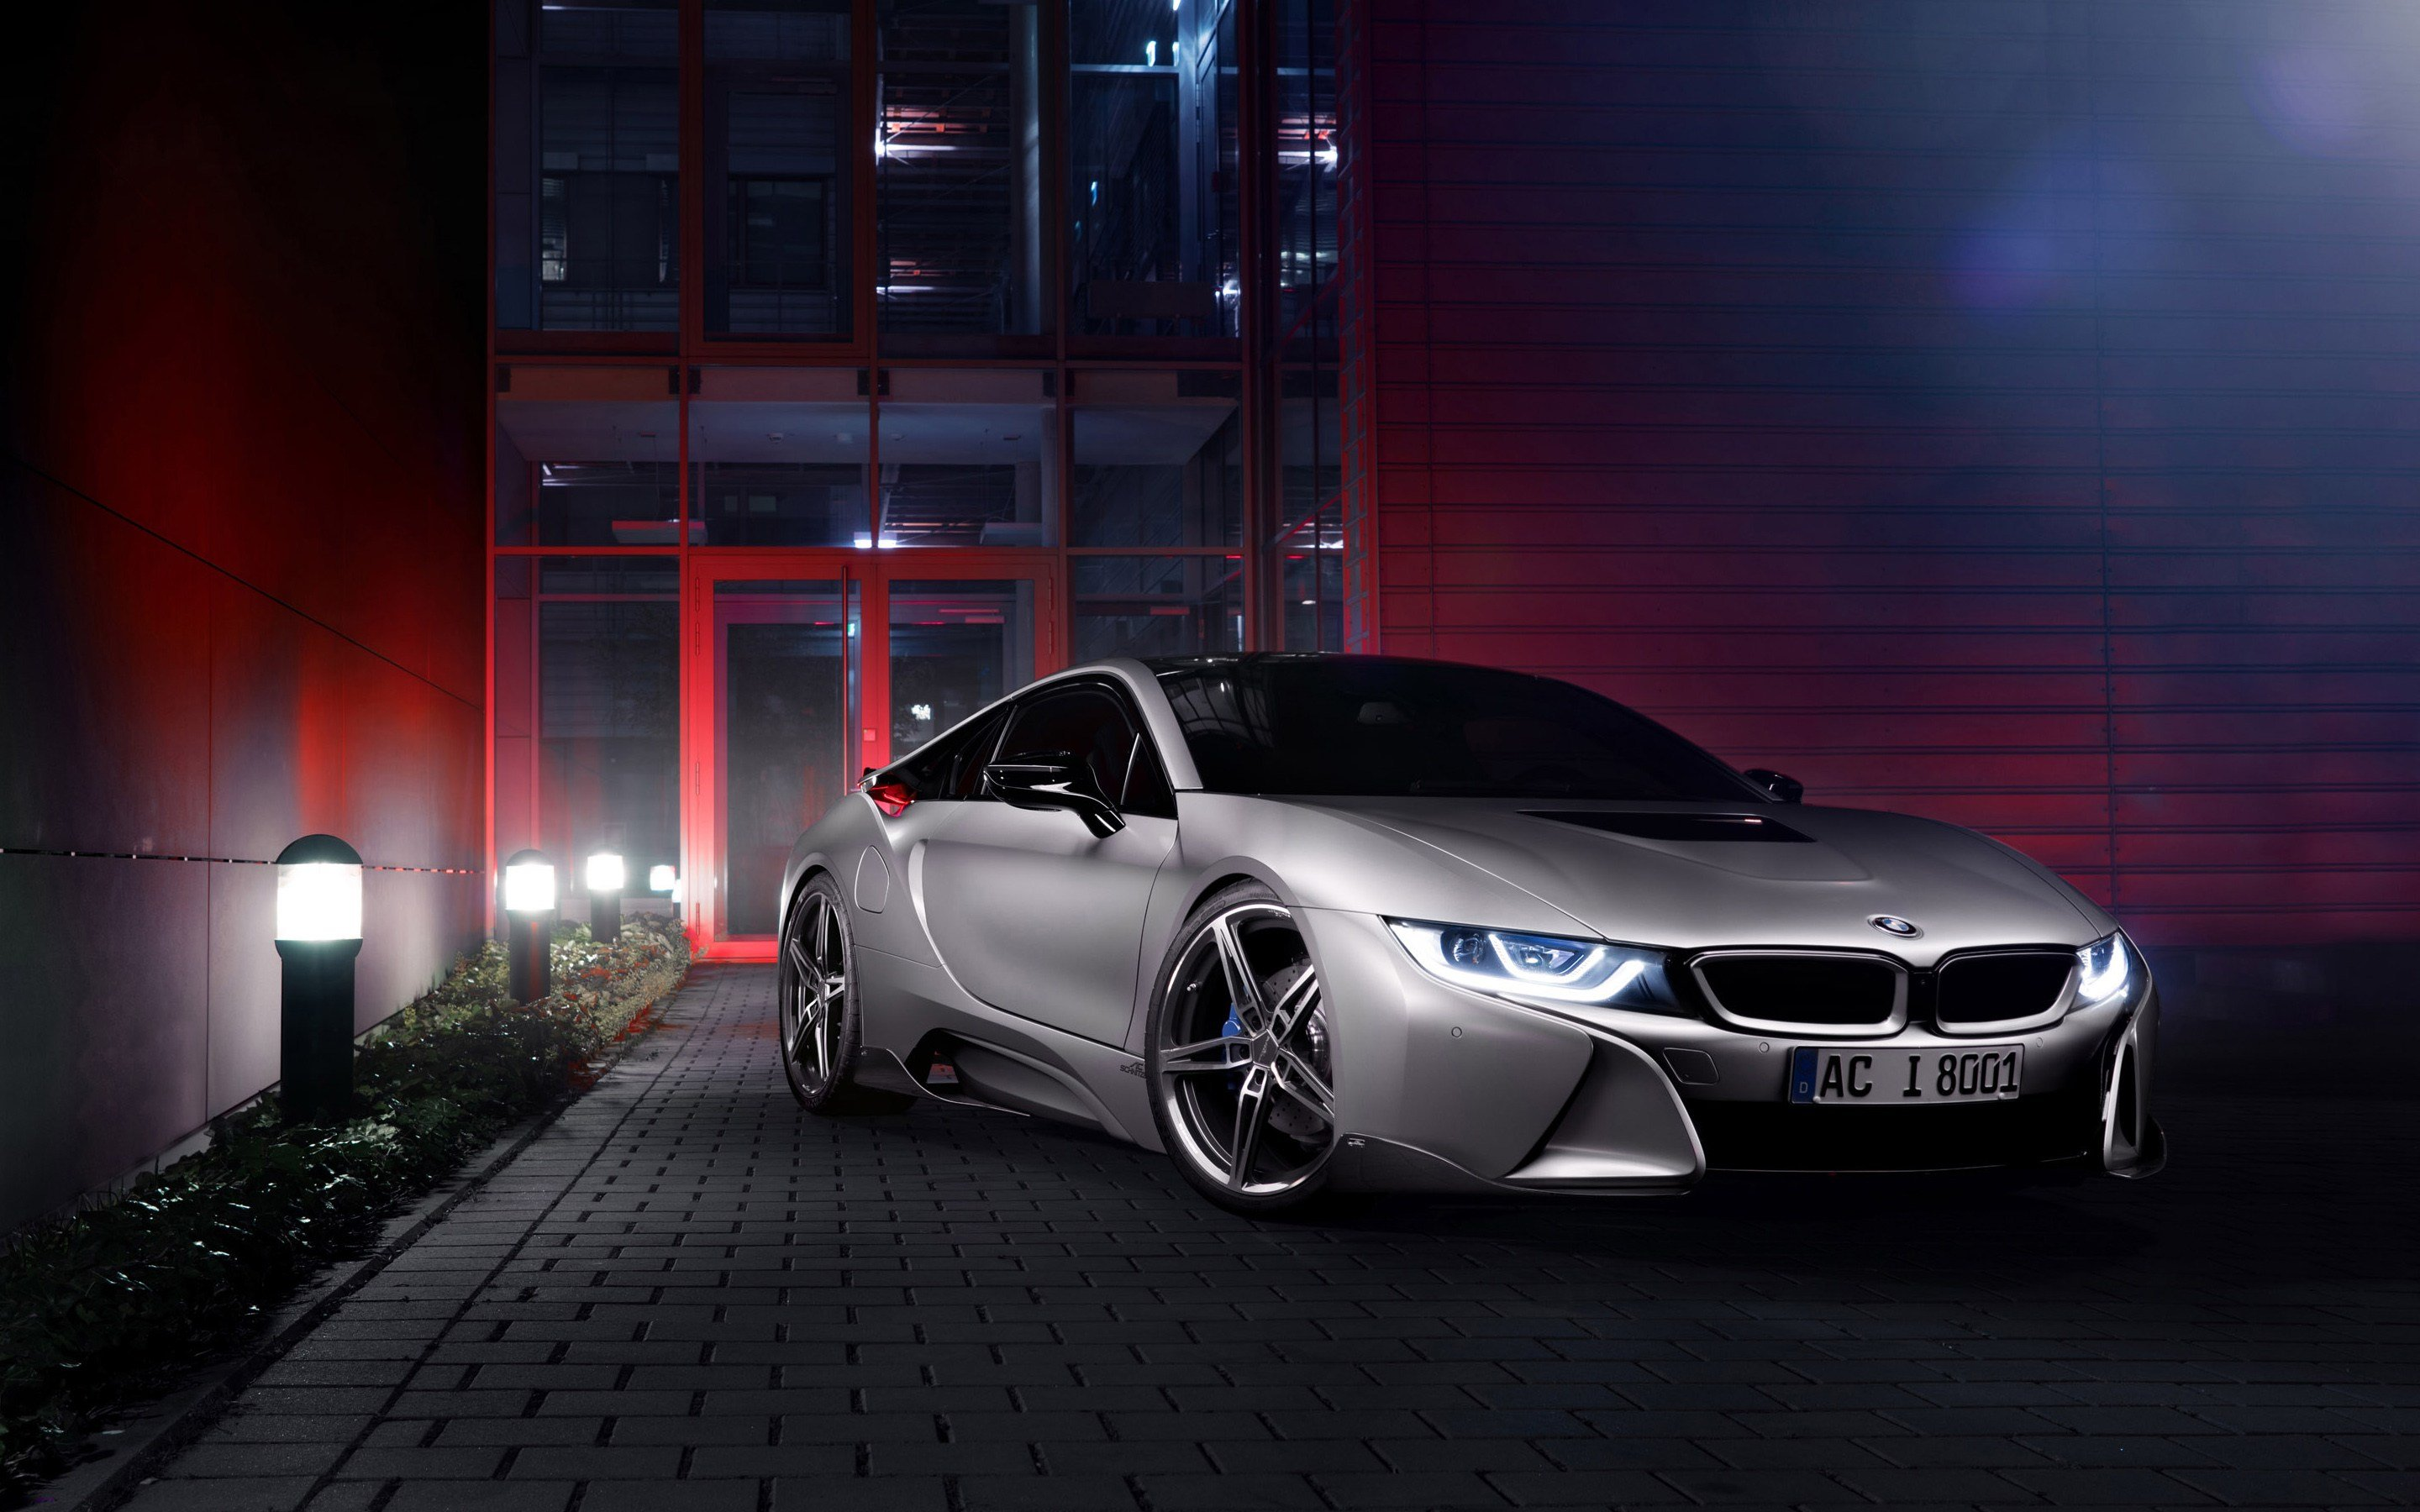 Latest 2015 Ac Schnitzer Bmw I8 2 Wallpaper Hd Car Wallpapers Free Download